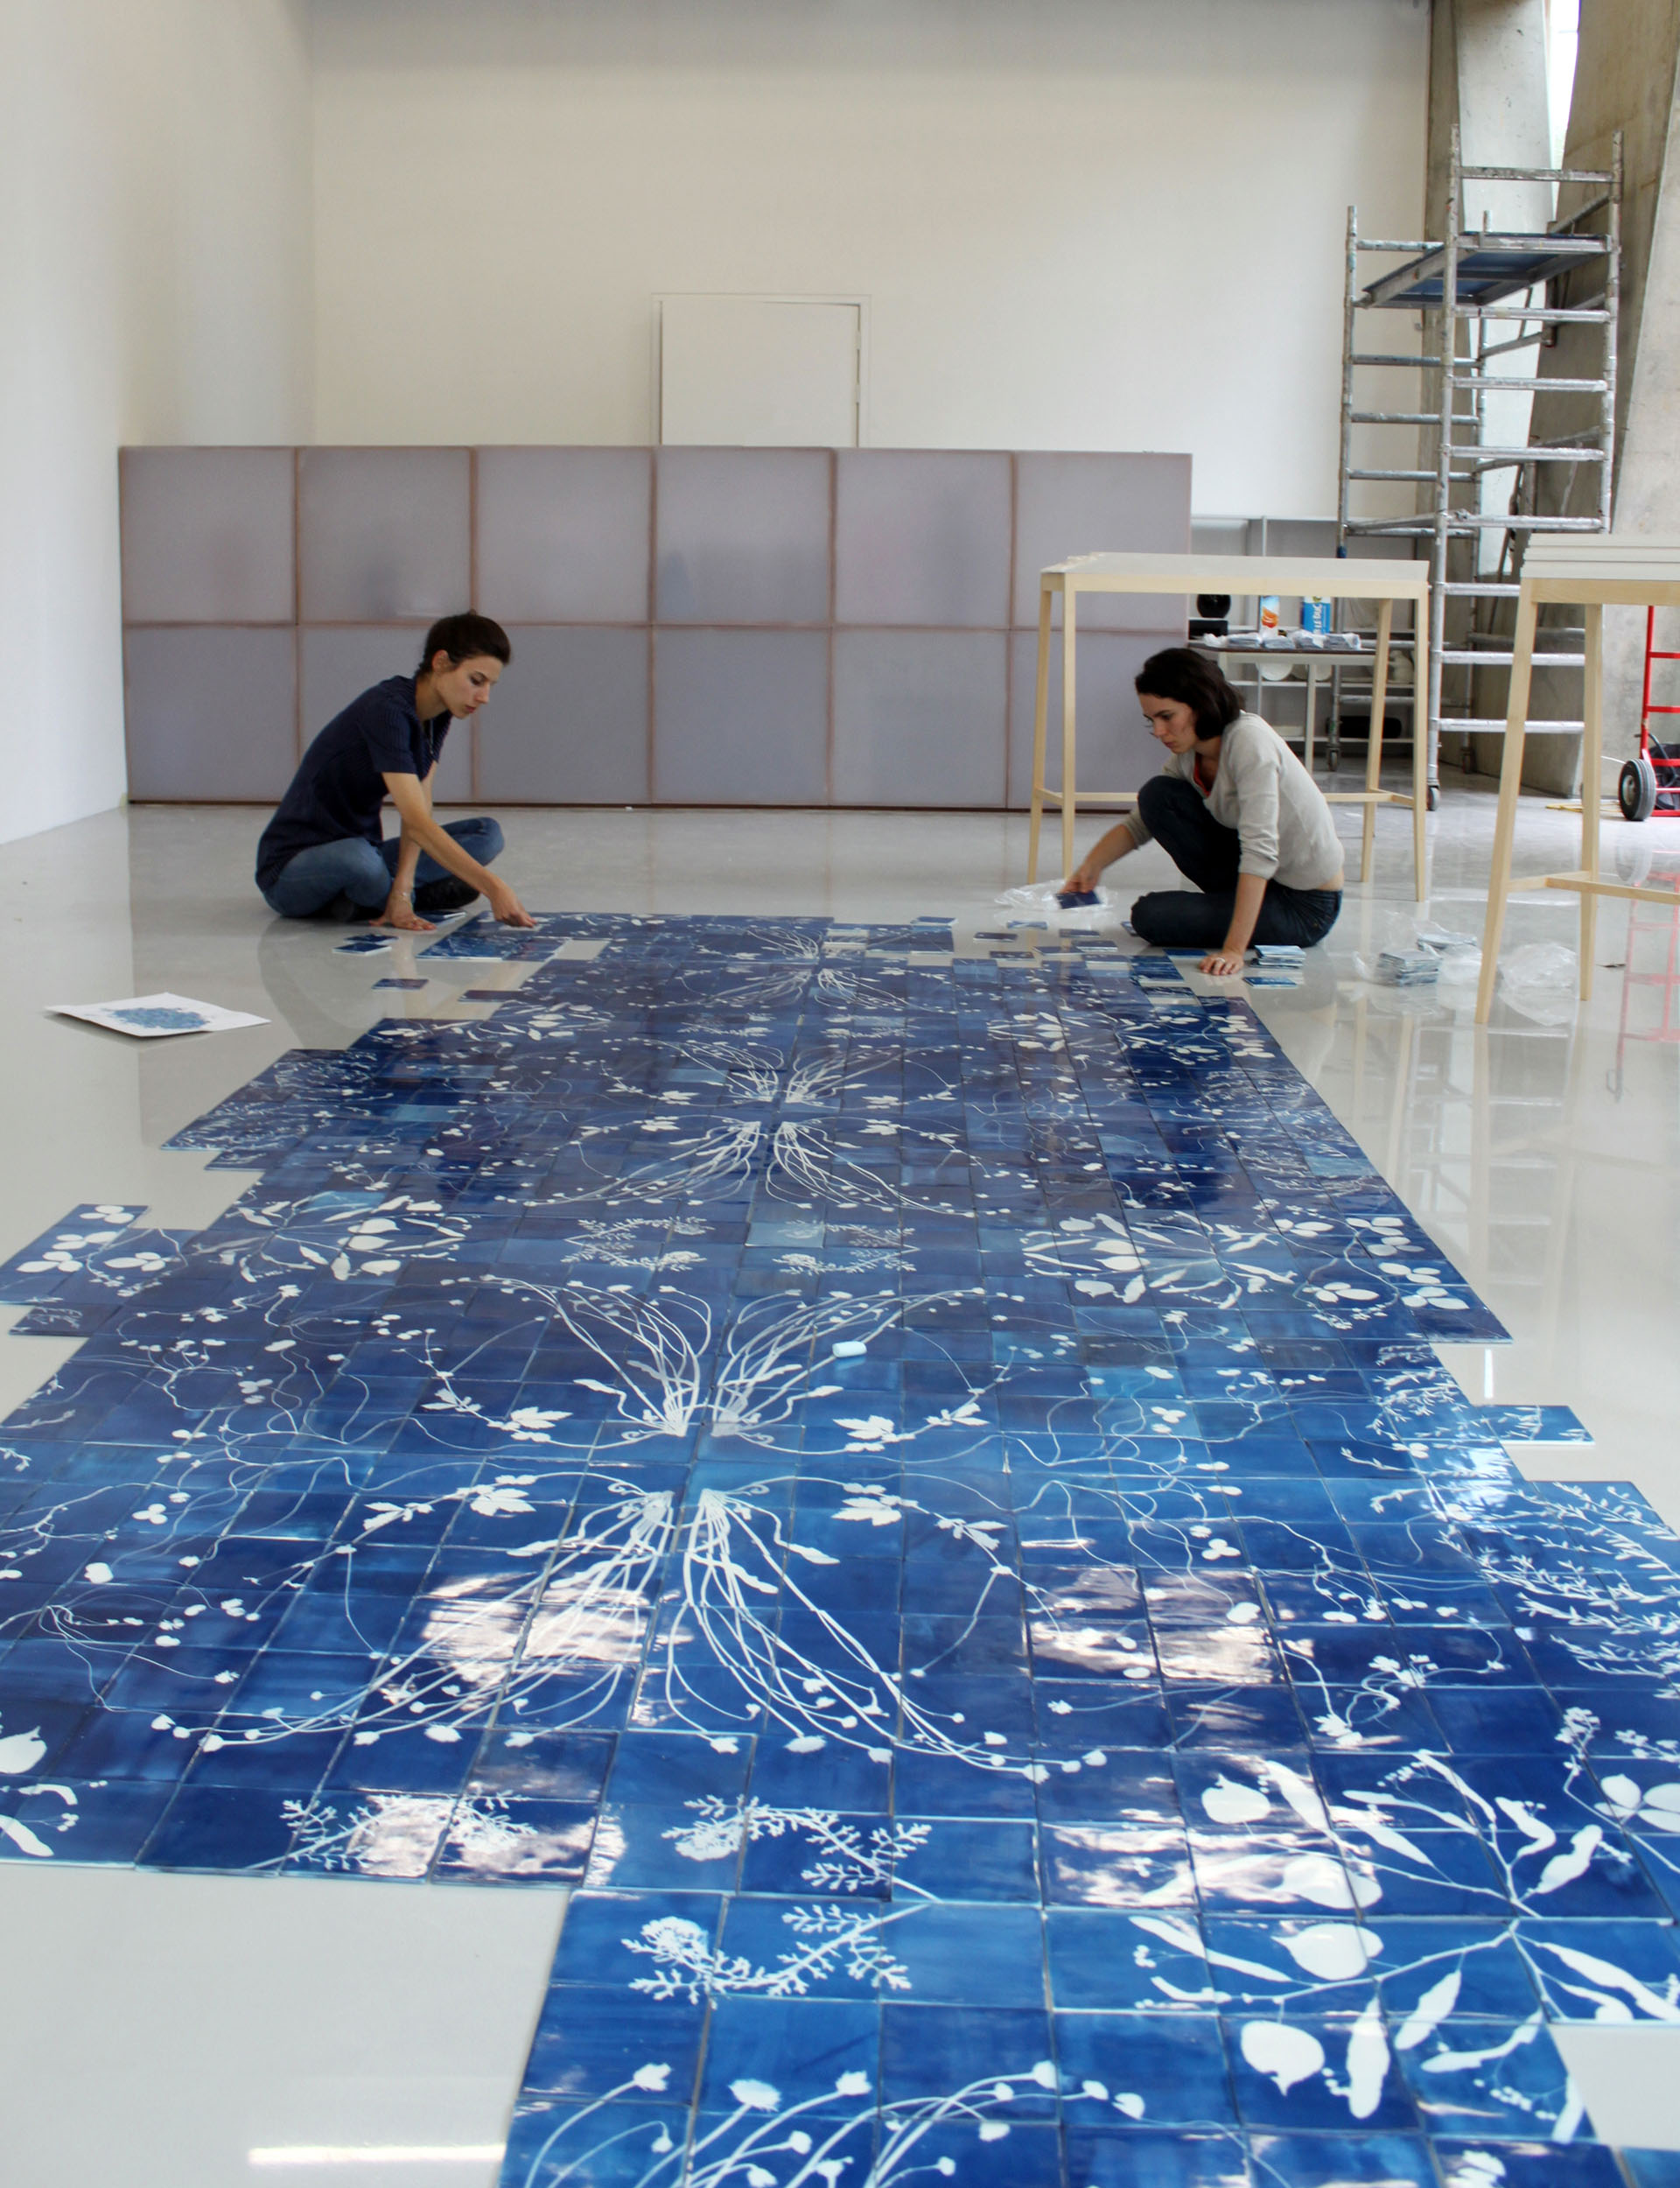 Laying out a large Blueware tile mural on the floor